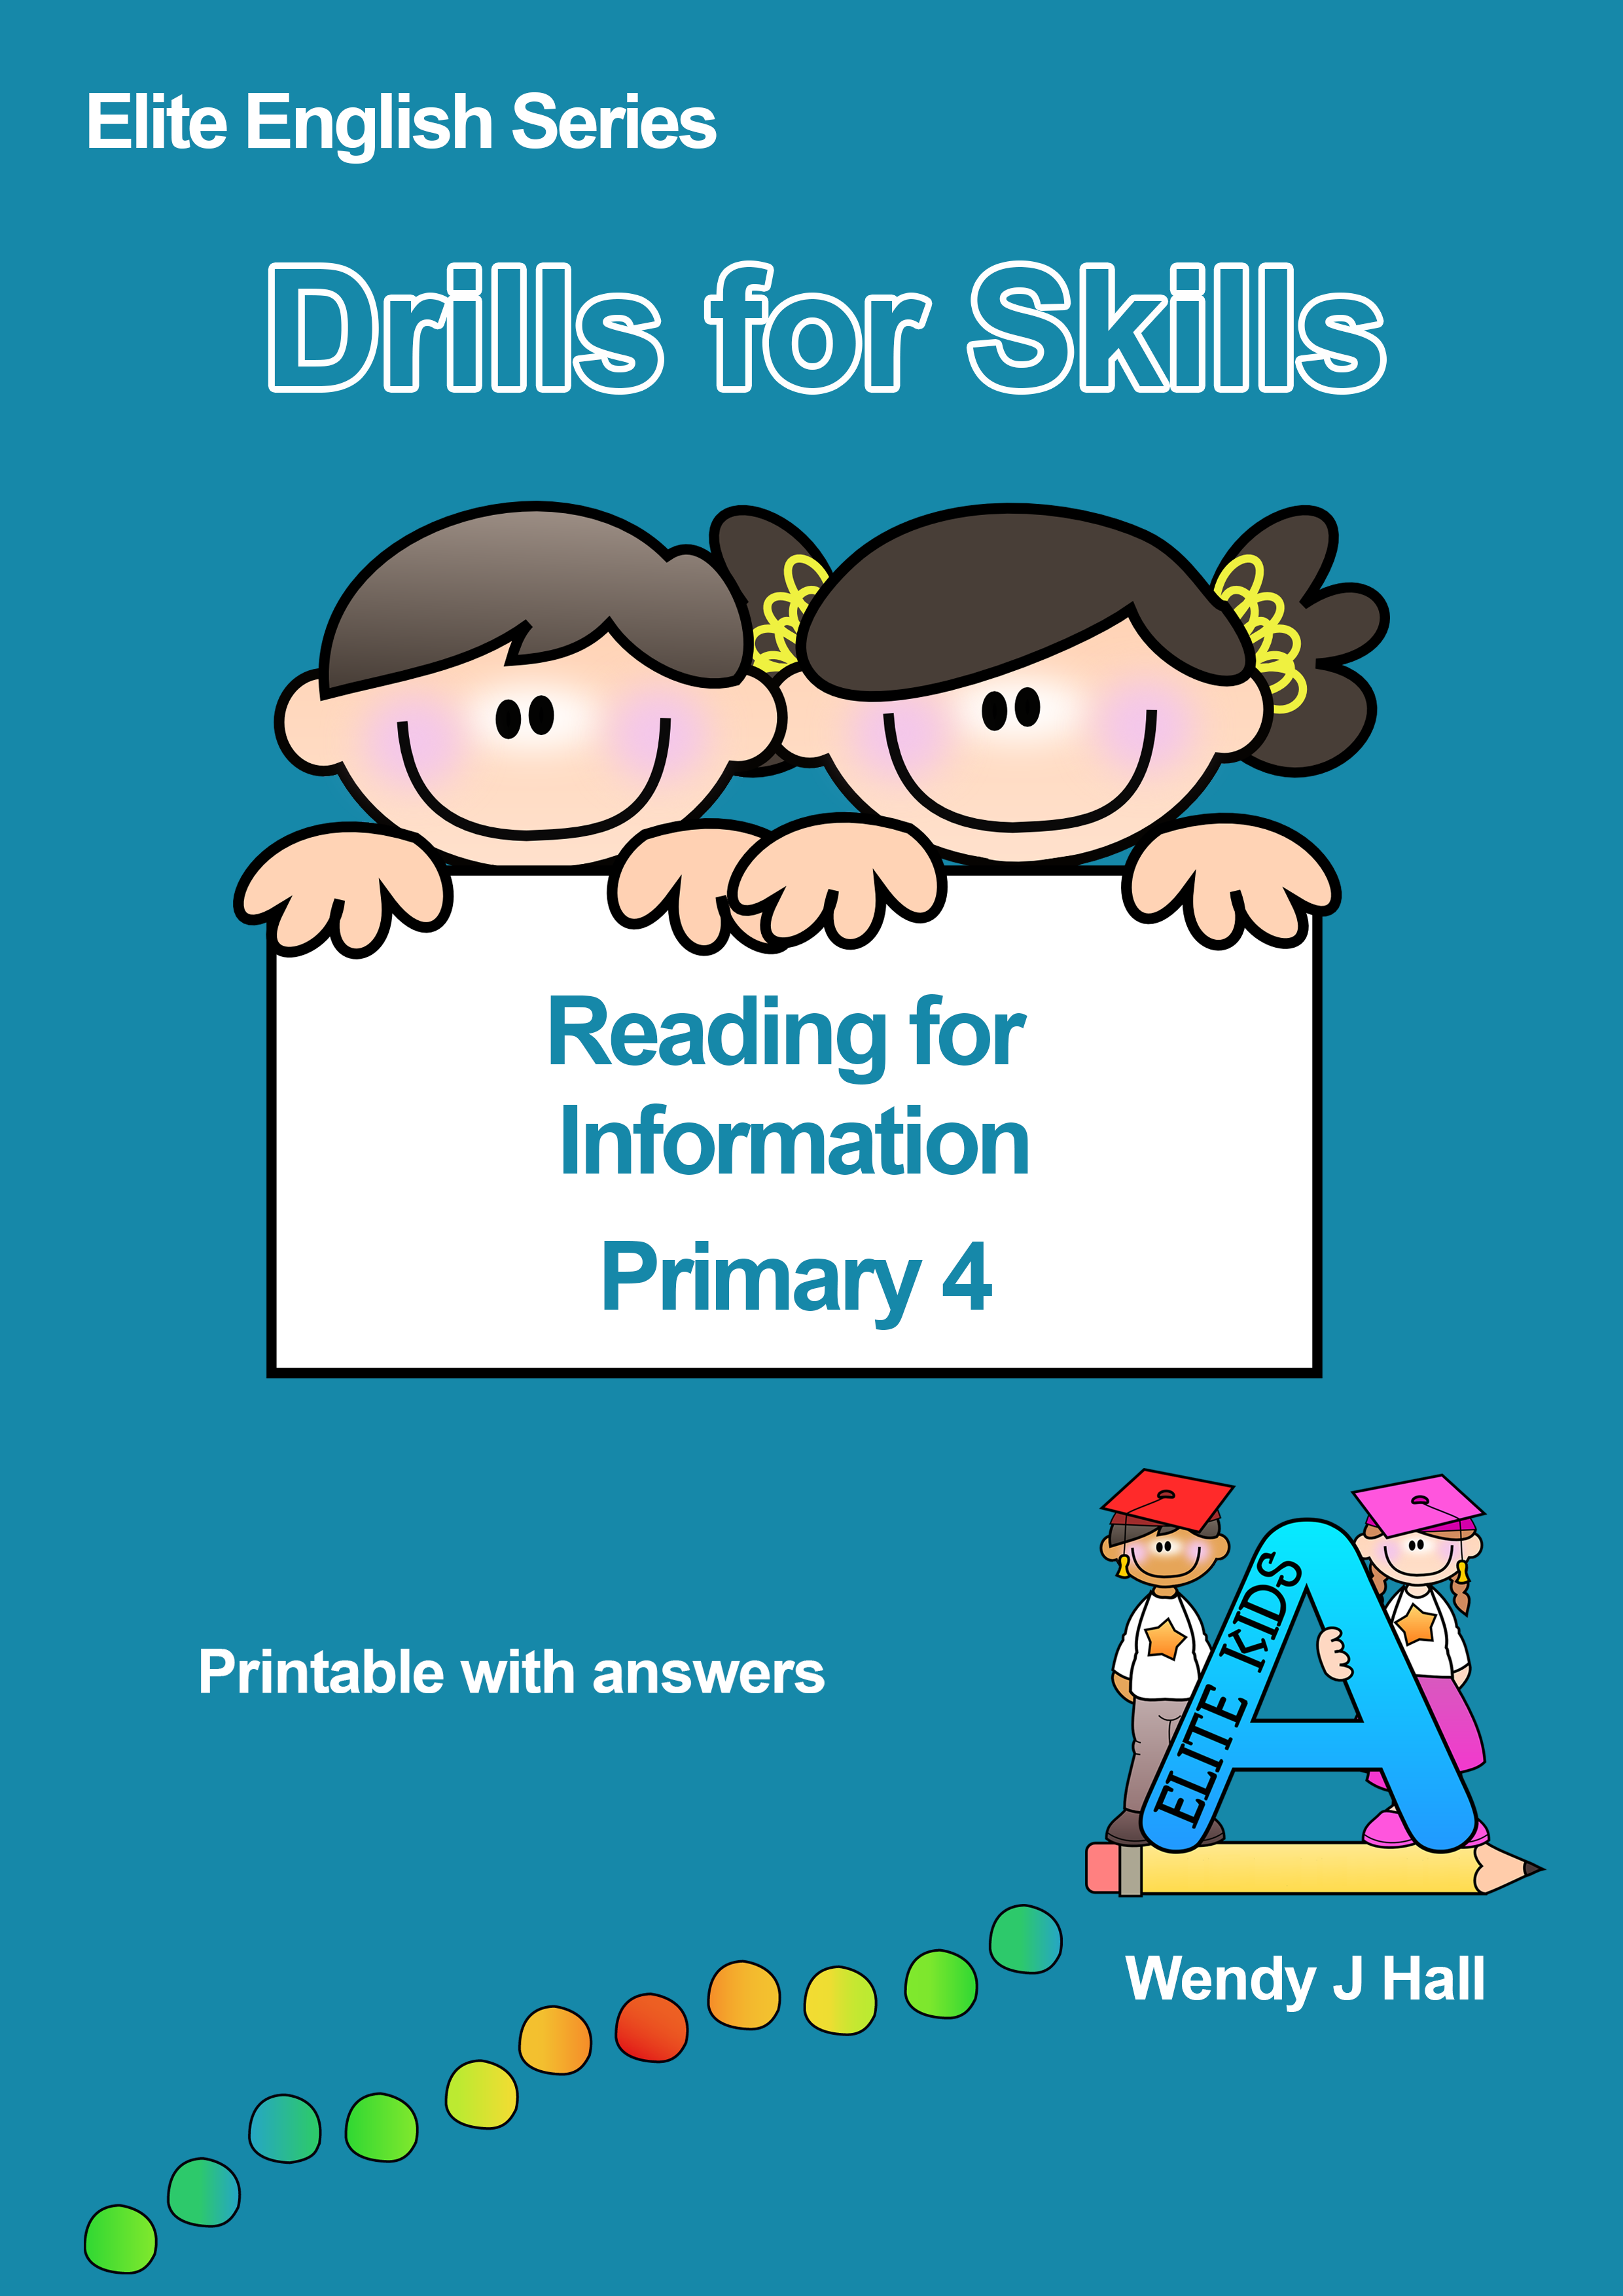 Drills for Skills - Reading for information | Primary 4